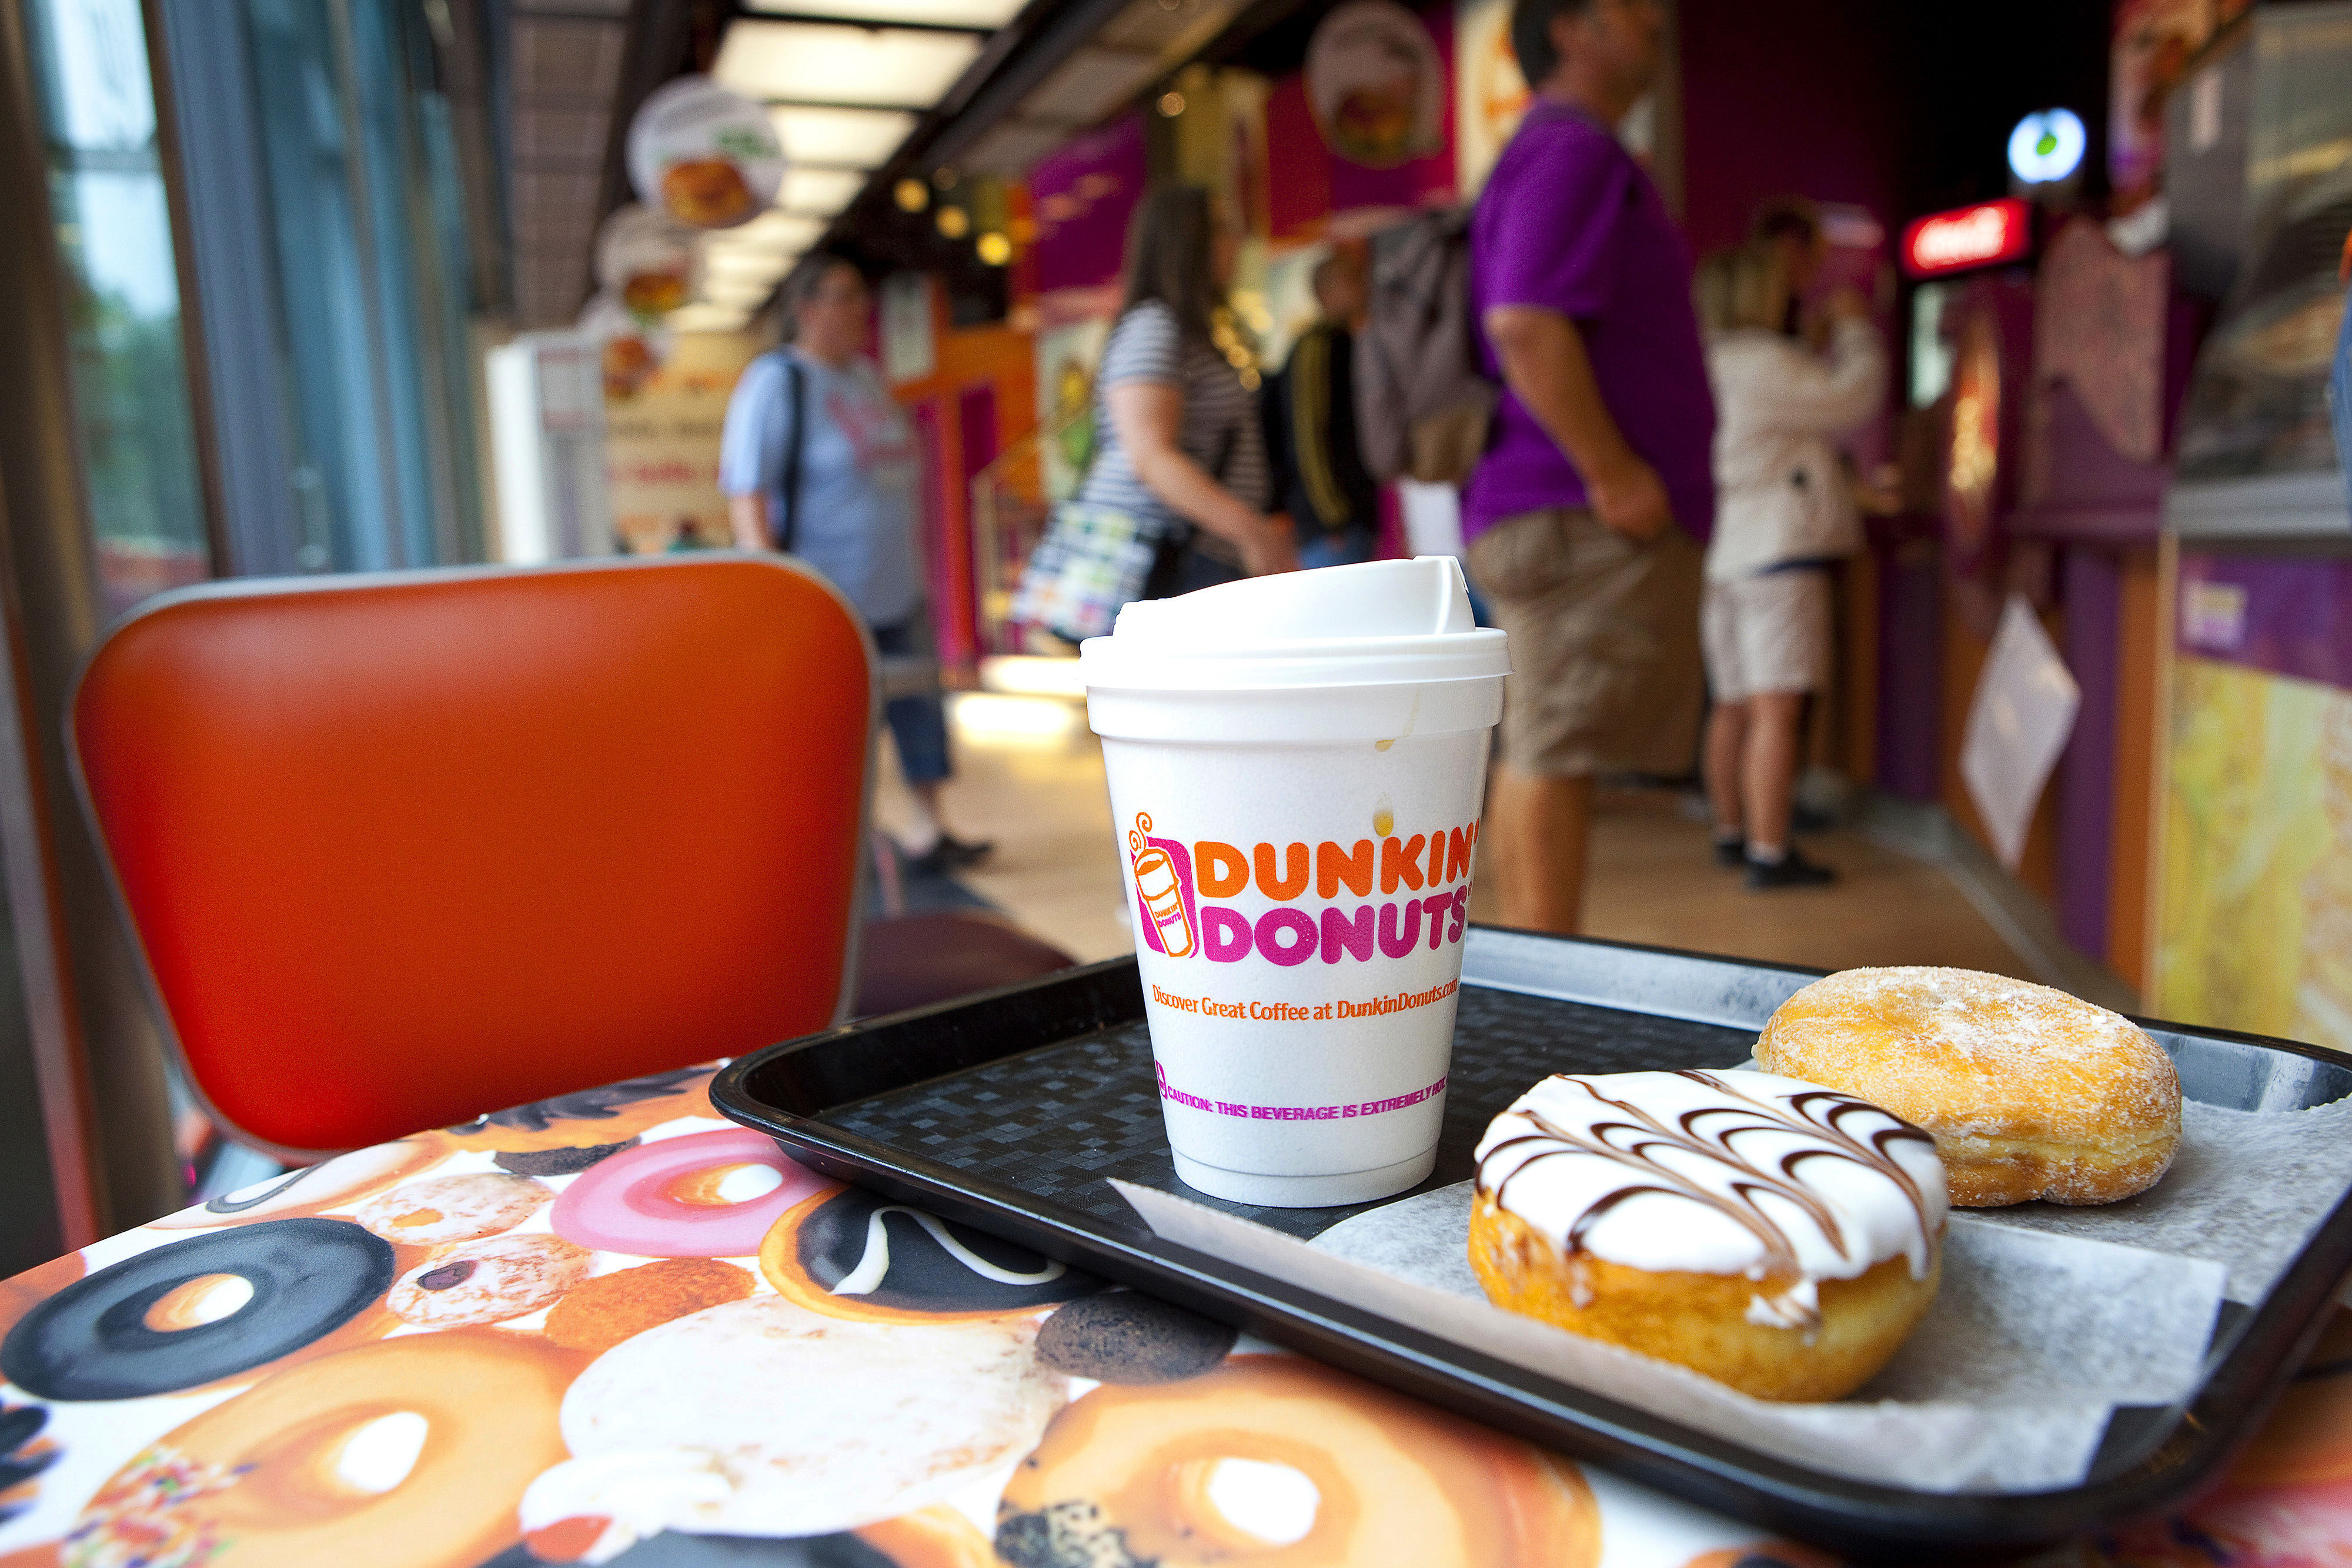 Doughnuts and a beverage cup are seen on a tray as customers wait to be served at a sales counter in this arranged photograph taken inside a Dunkin' Donuts store, operated by Dunkin' Brands Group Inc., in Berlin, Germany, on Aug. 19, 2013.